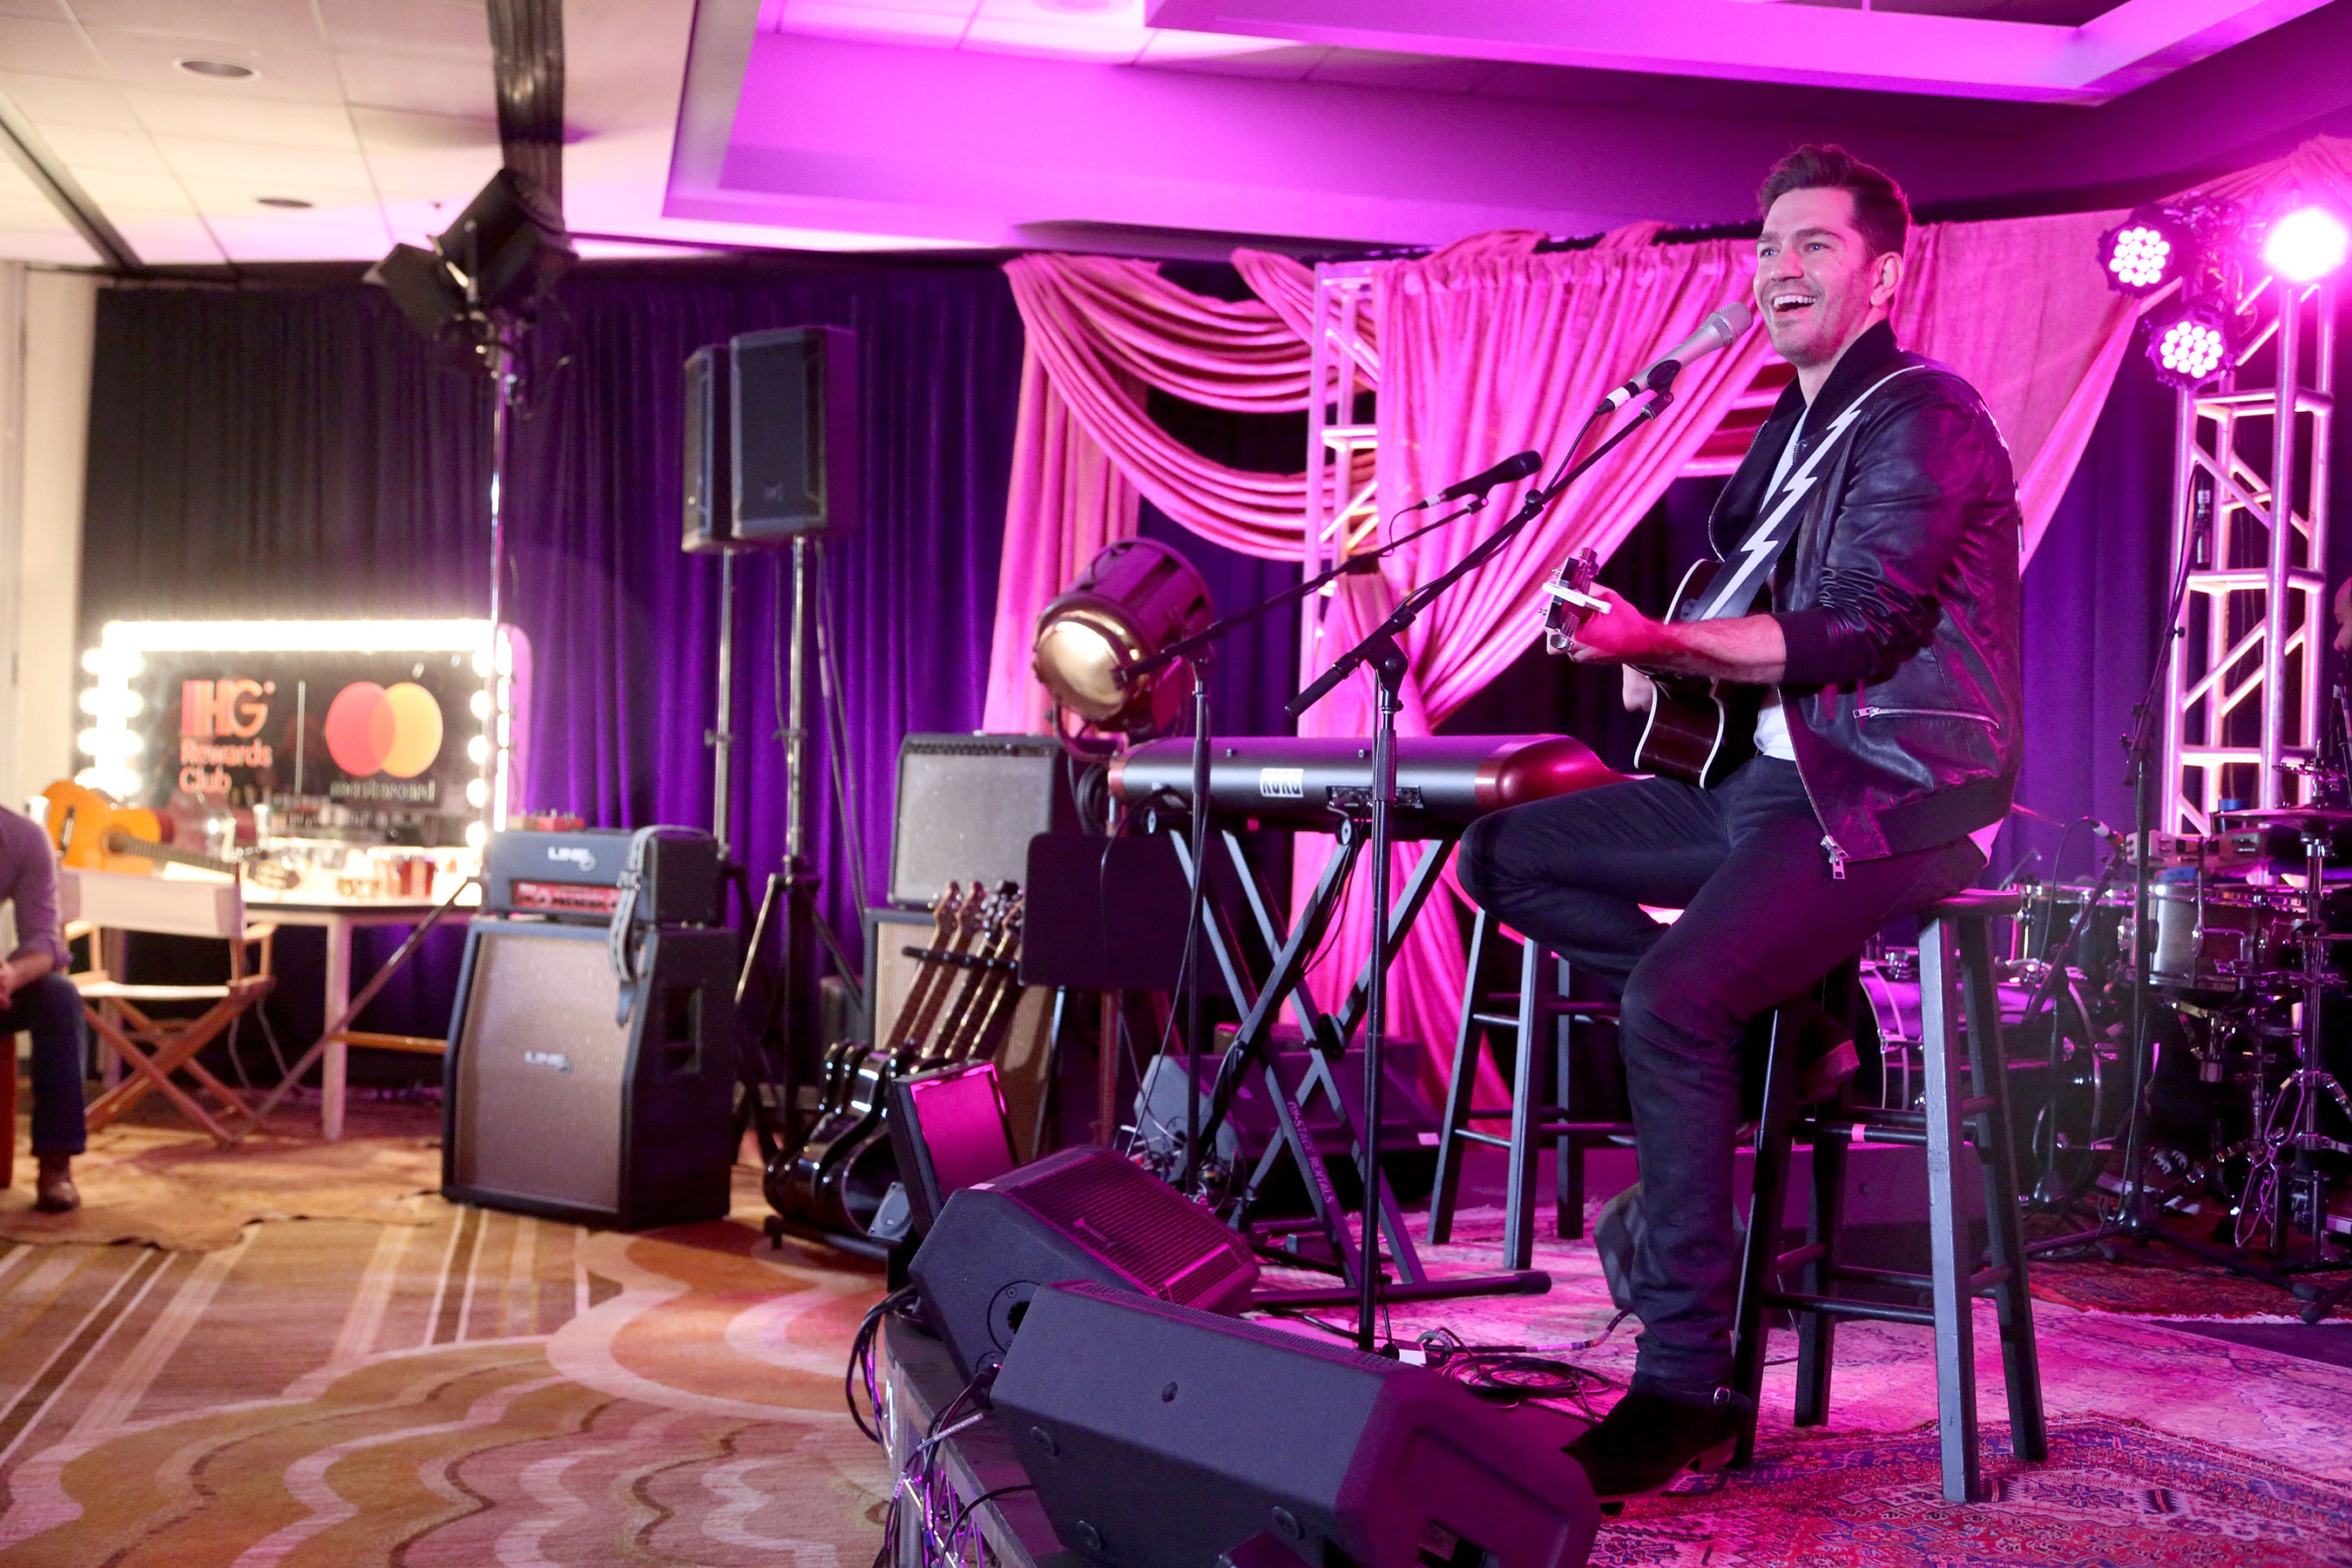 Guests at the Crowne Plaza Los Angeles Airport got the surprise of a lifetime thanks to IHG Rewards Club's® pop-up concert by triple platinum recording artist Andy Grammer on Tues., Nov. 29, 2016, in Los Angeles.